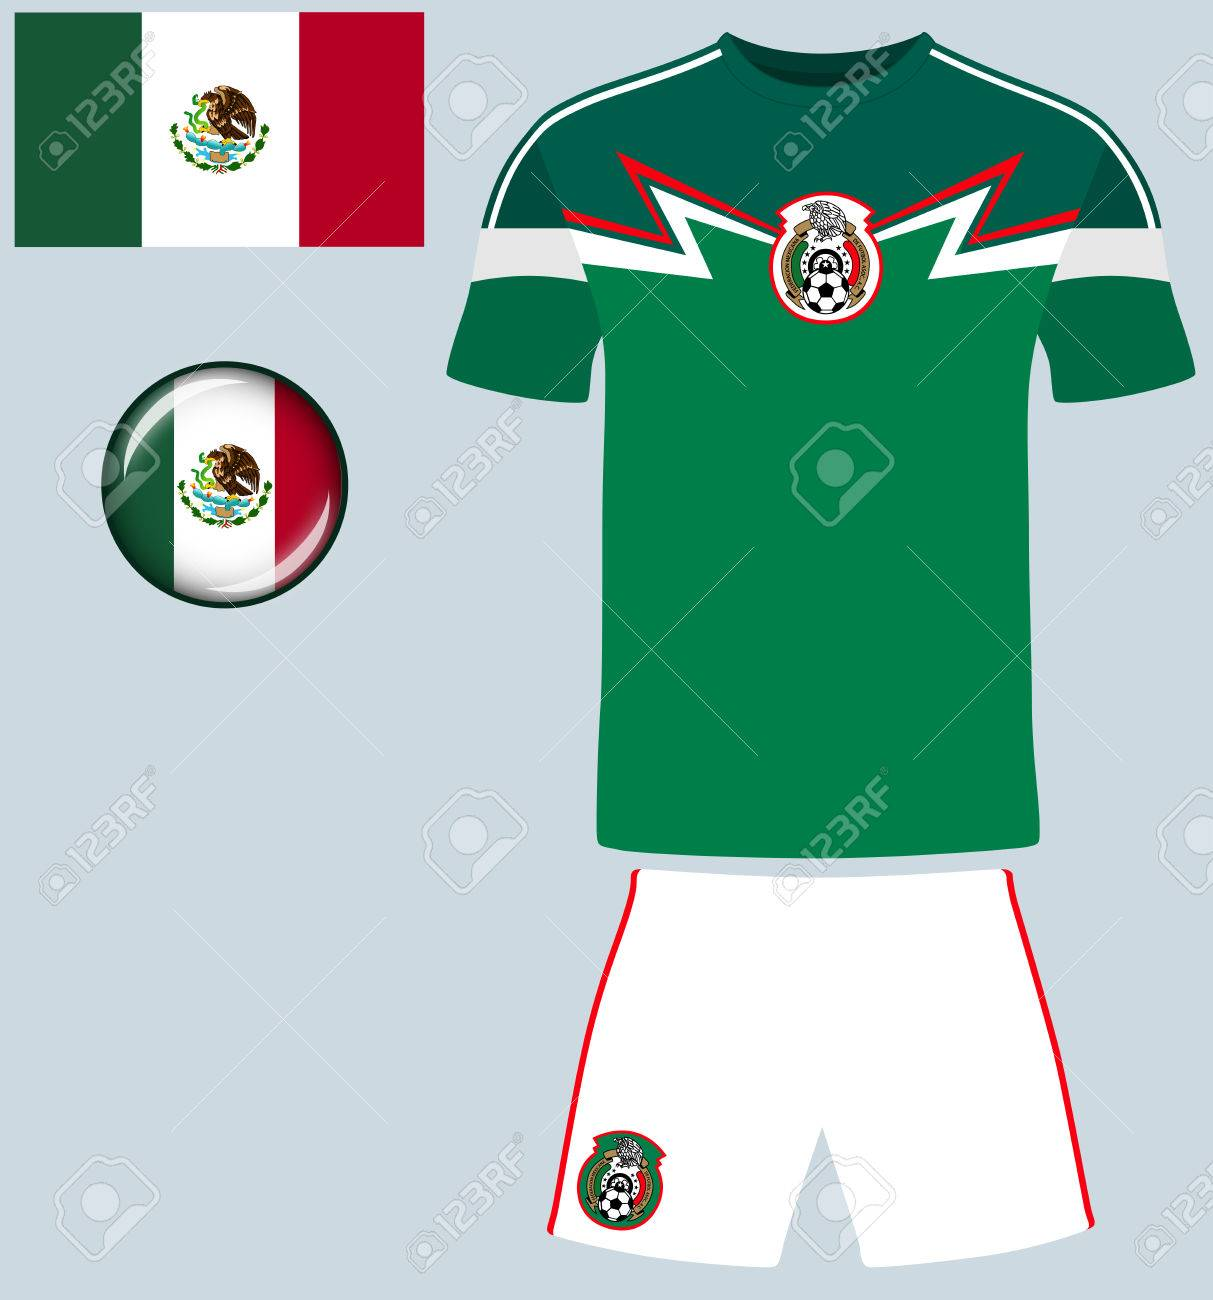 aac060f29c4 Mexico Football Jersey. Vector graphic illustration representing the  national football jersey of Mexico. Stock